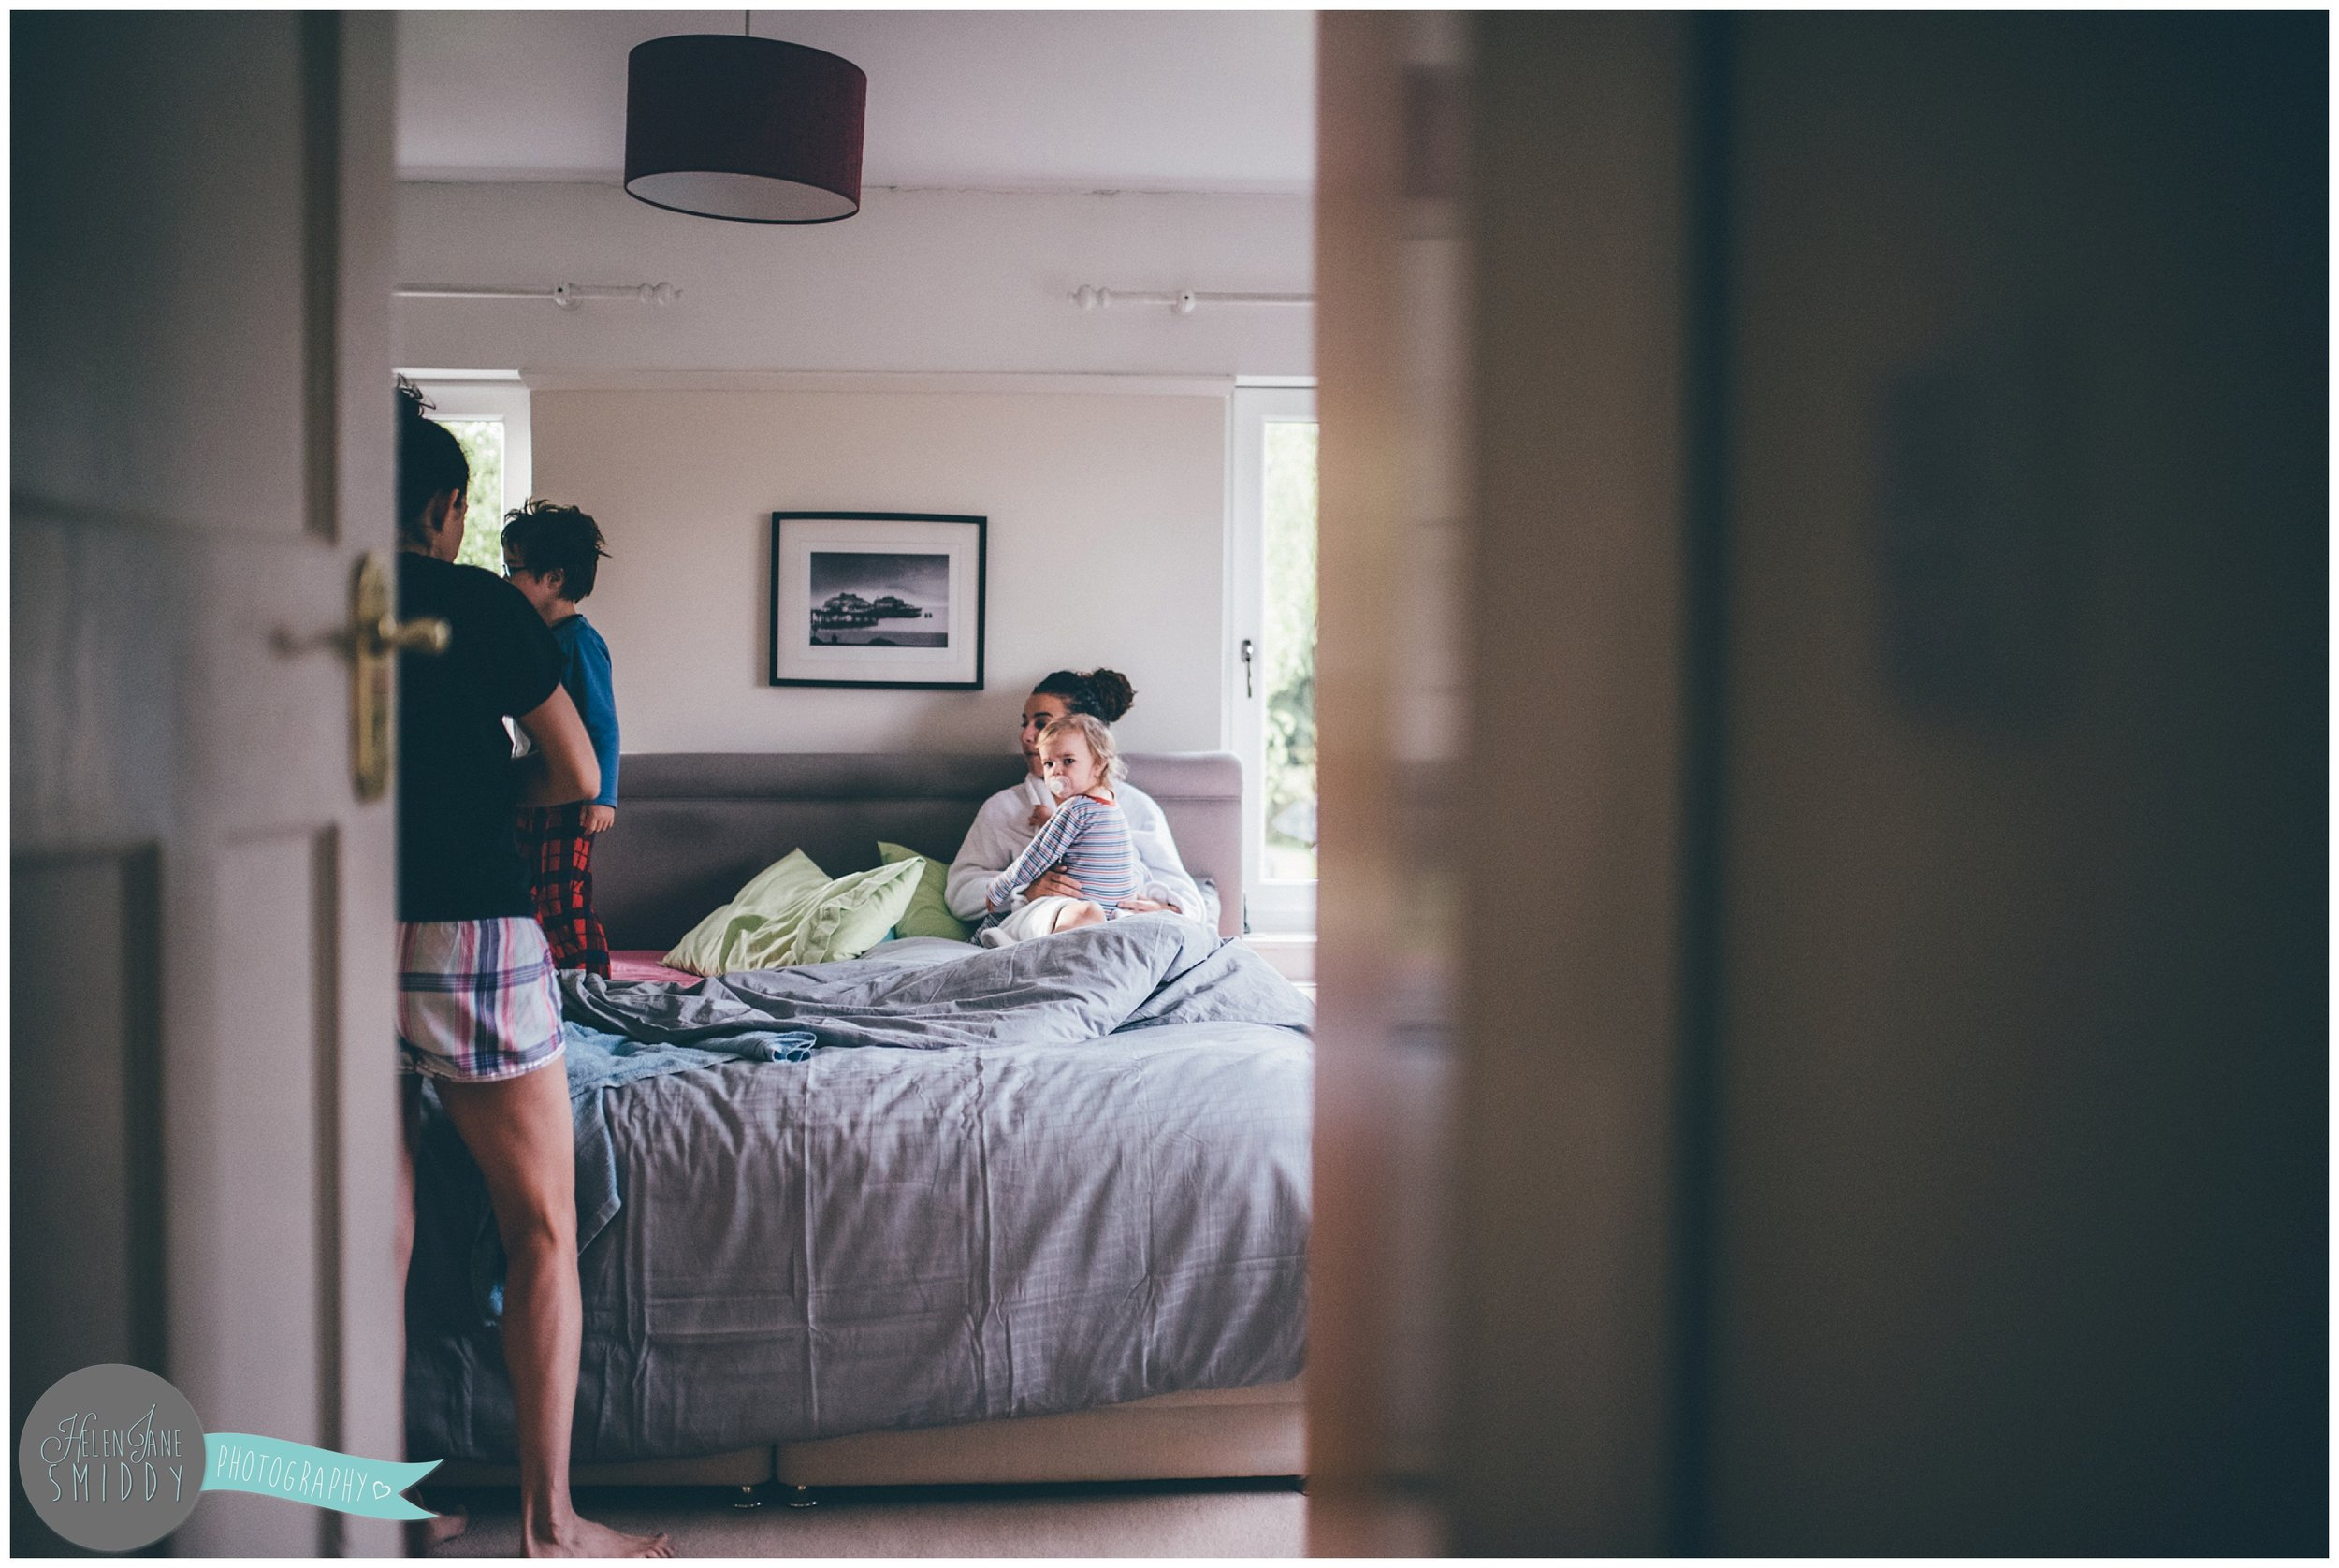 The family sit on the bed, waking up before getting ready for their day.